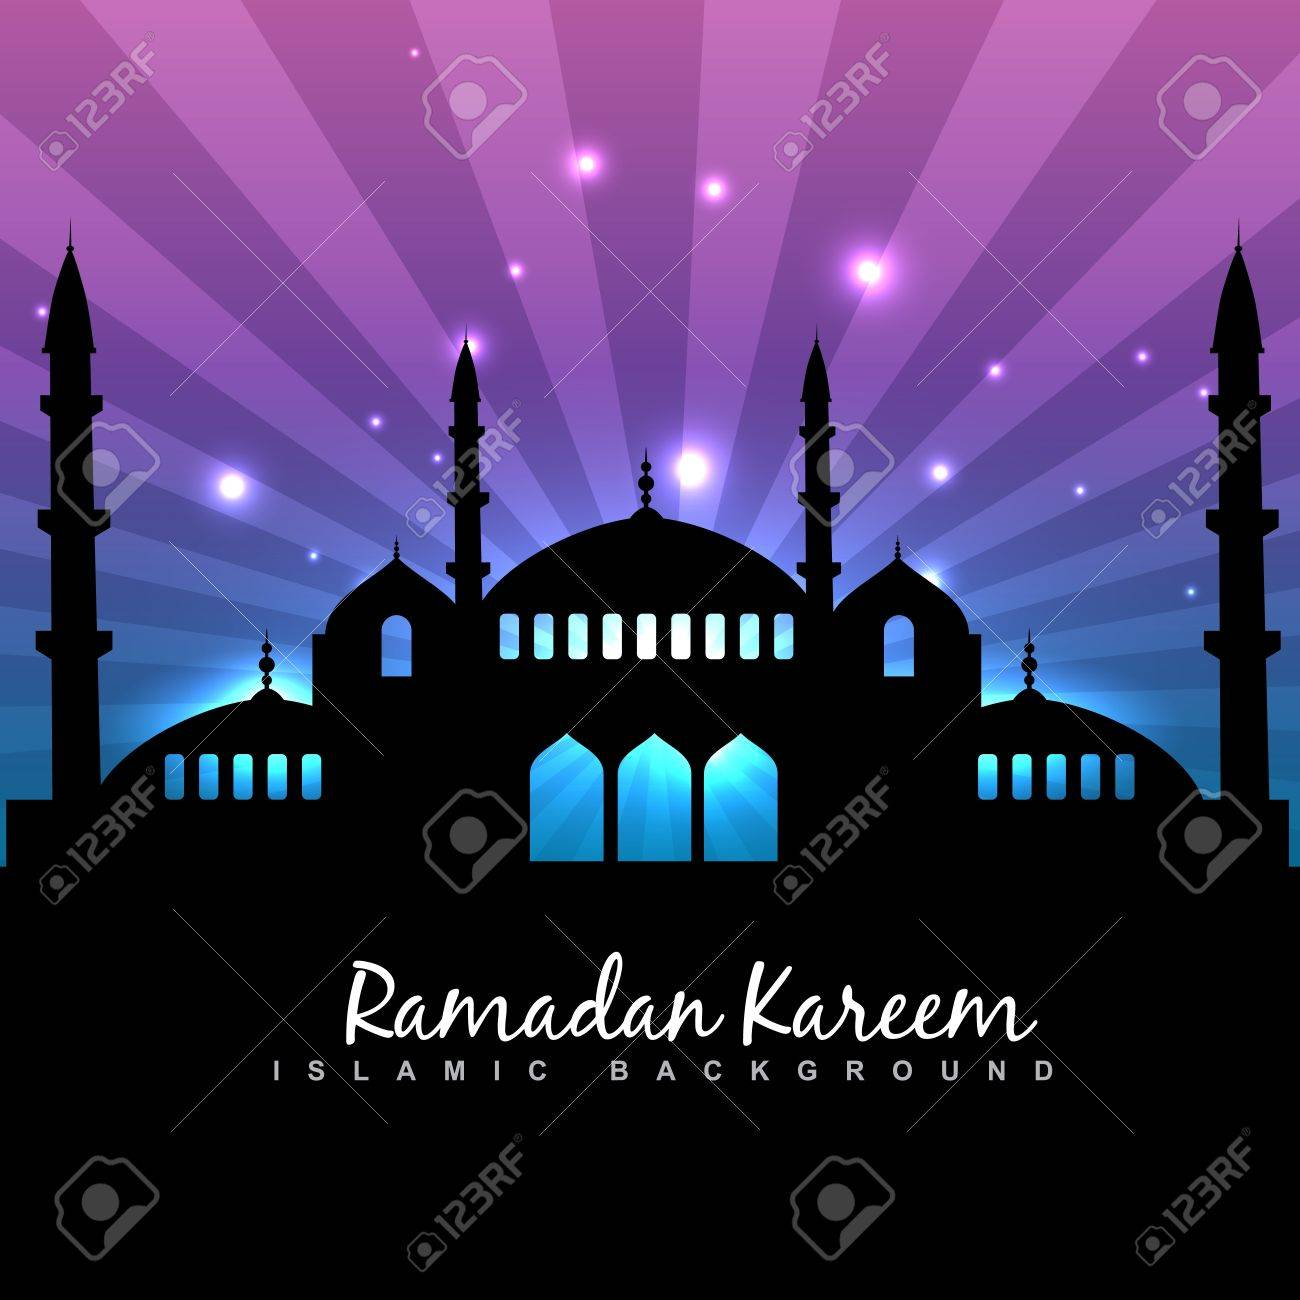 stylish ramadan kareem islamic background Stock Vector - 20531177